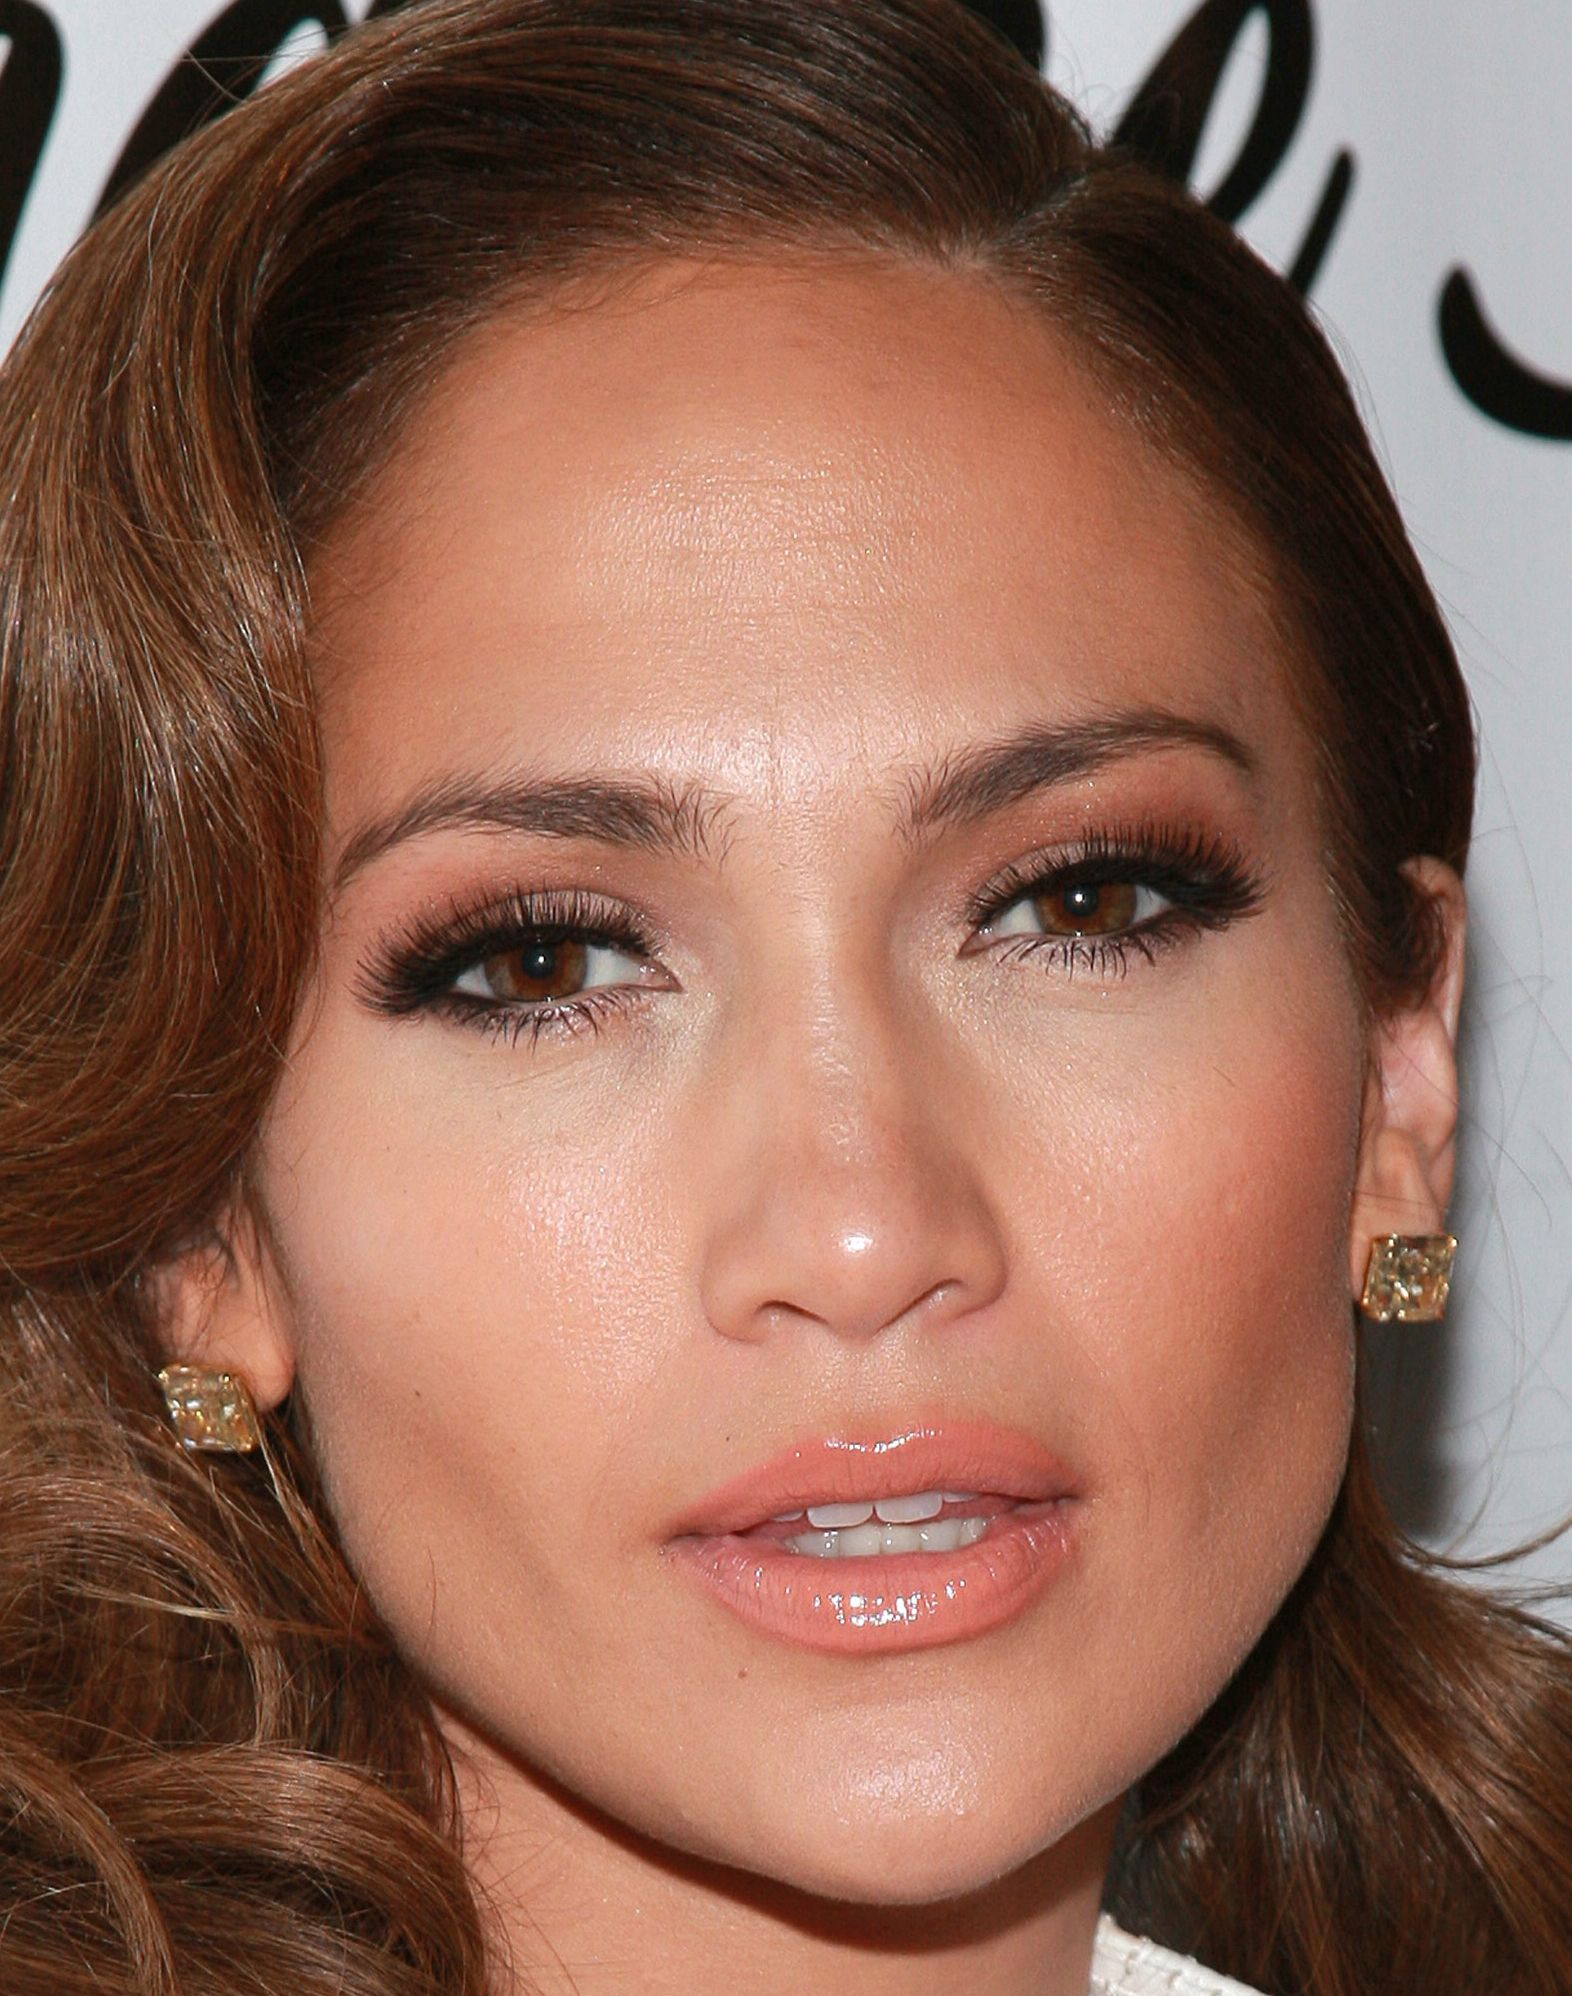 JenniferLopez JLo makeup beauty face celeb